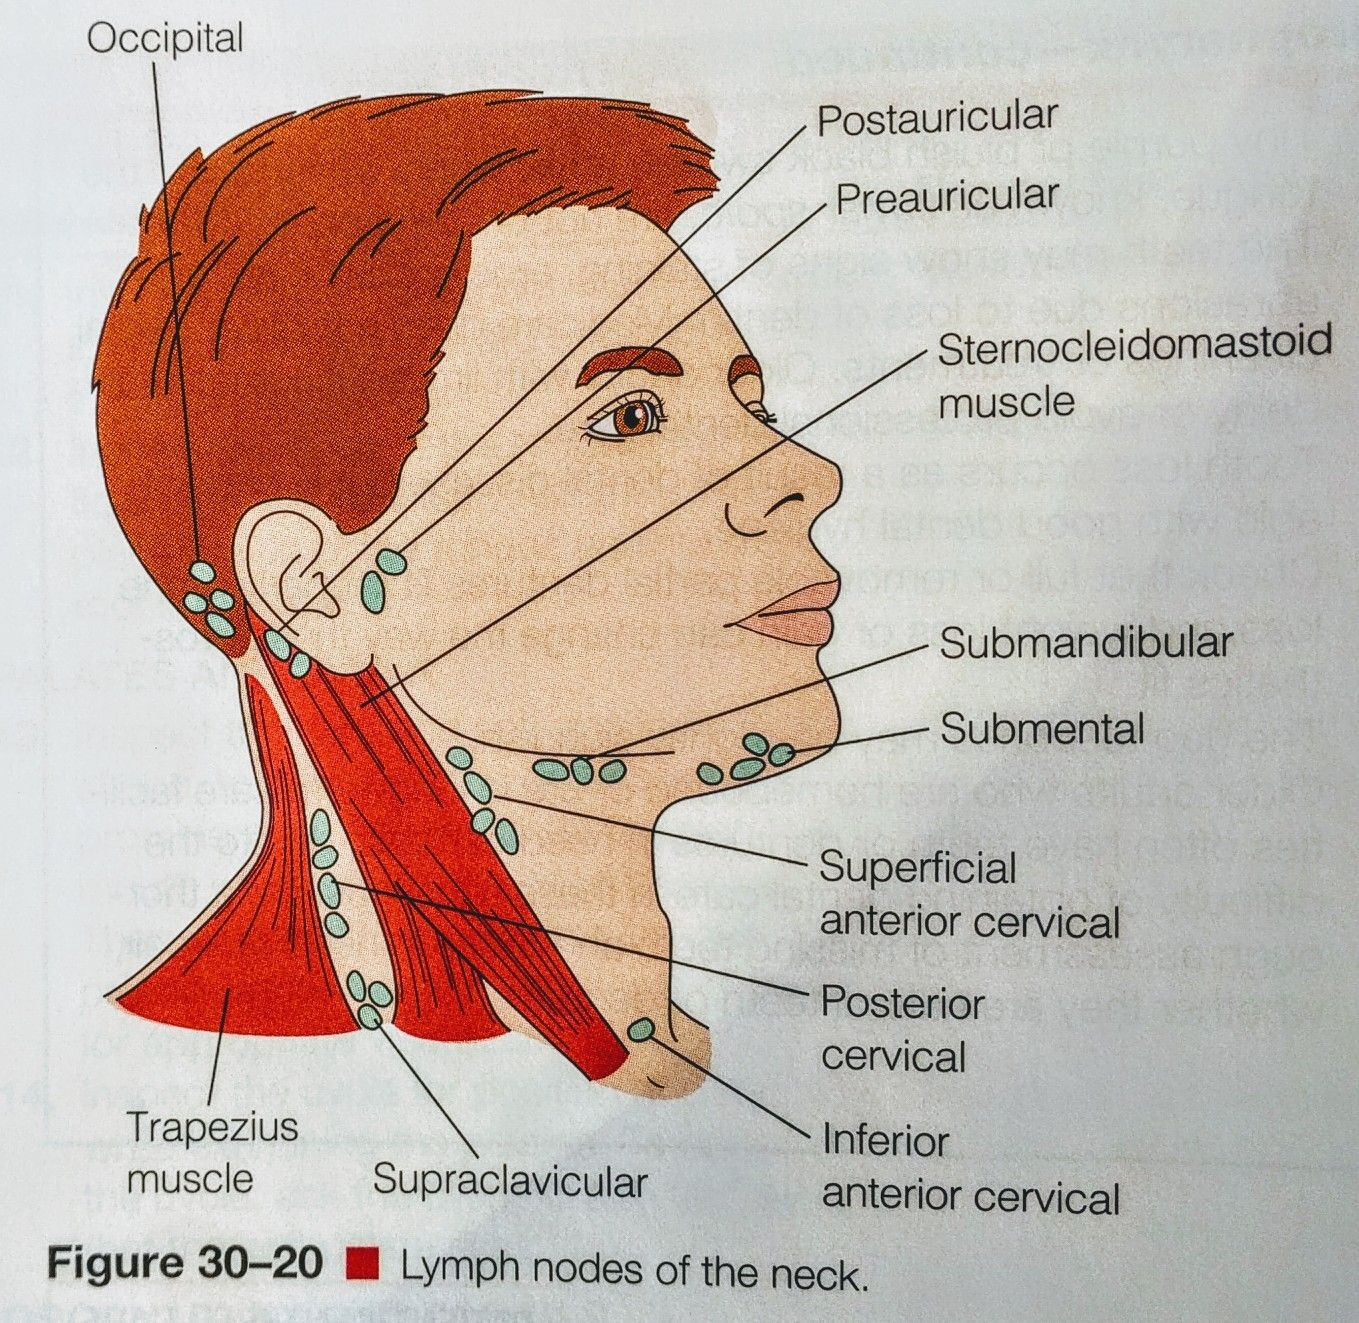 Lymph Nodes -Head & Neck | anatomy | Pinterest | Lymph nodes ...